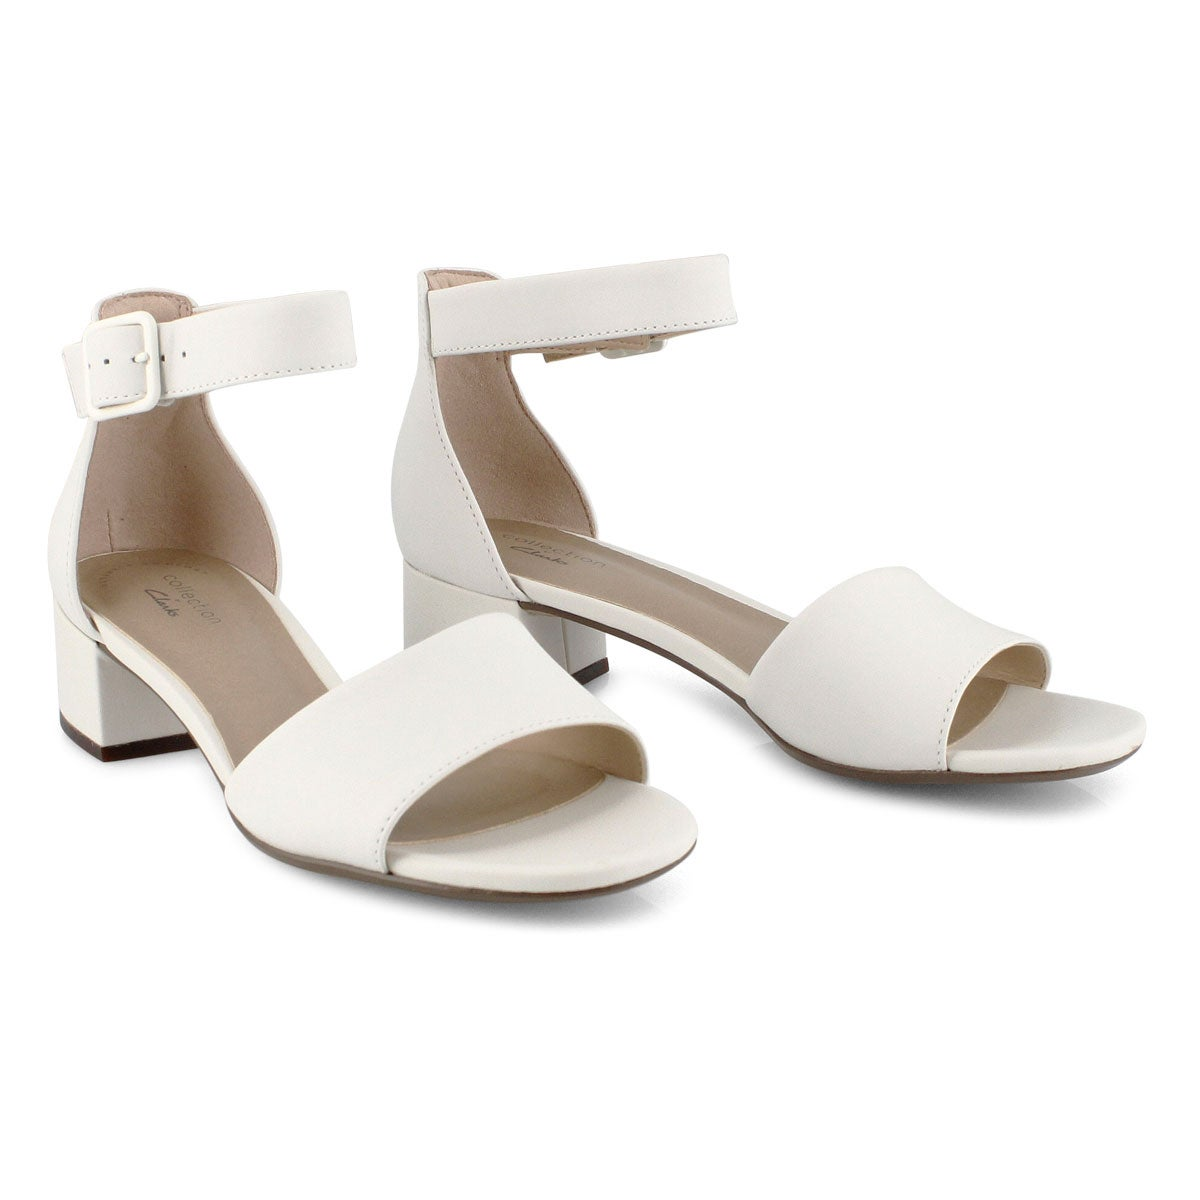 Lds Elisa Dedra white dress sandal